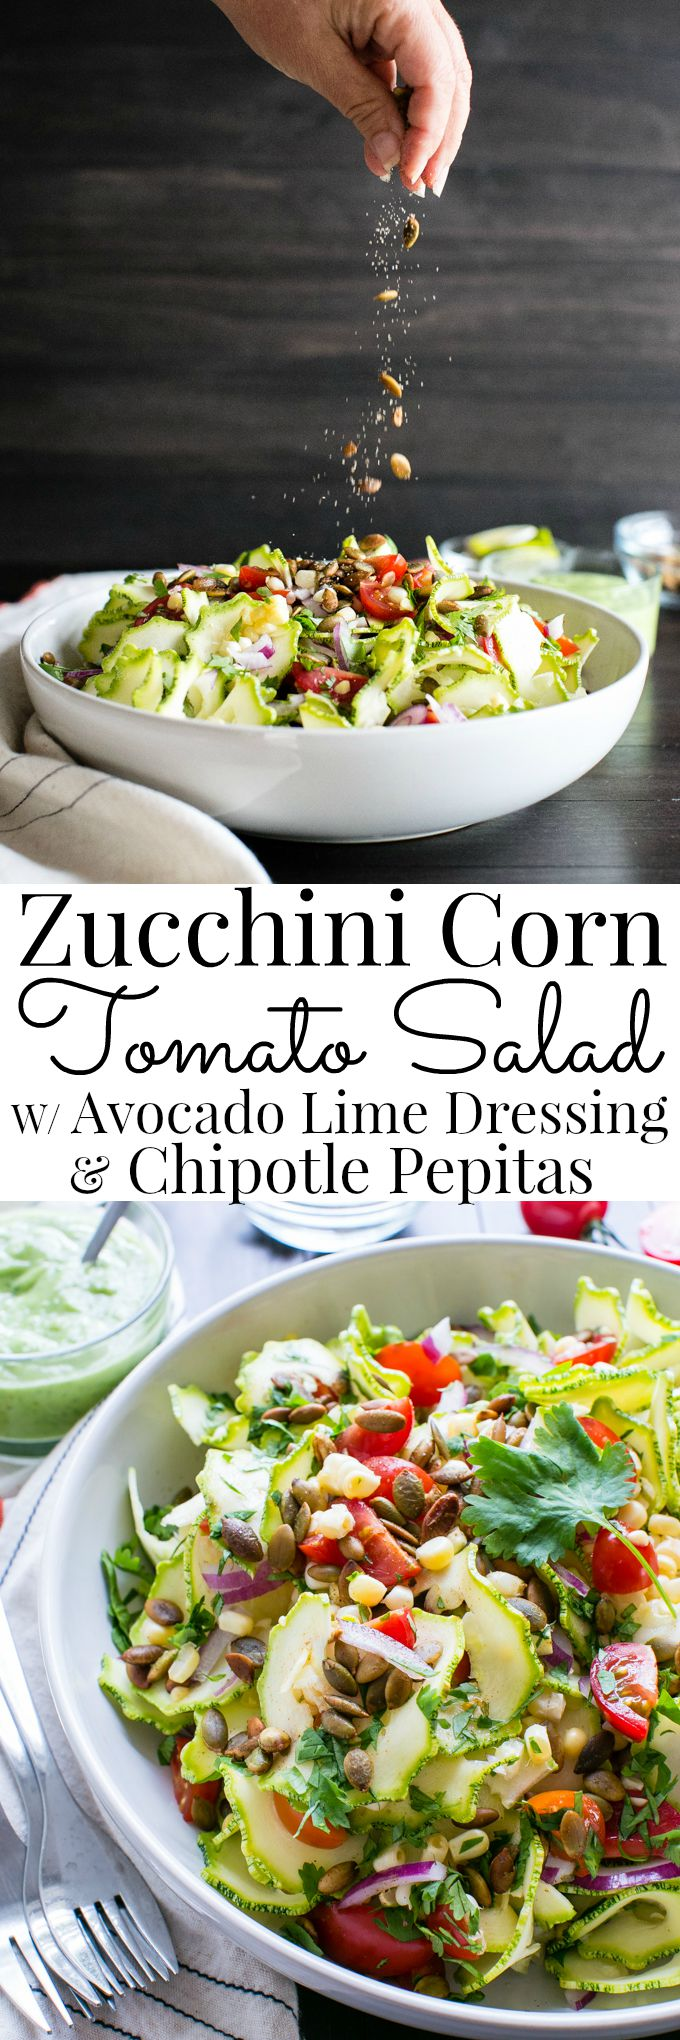 Zucchini Corn Tomato Salad with Avocado Lime Dressing #Vegan | Vanilla And Bean